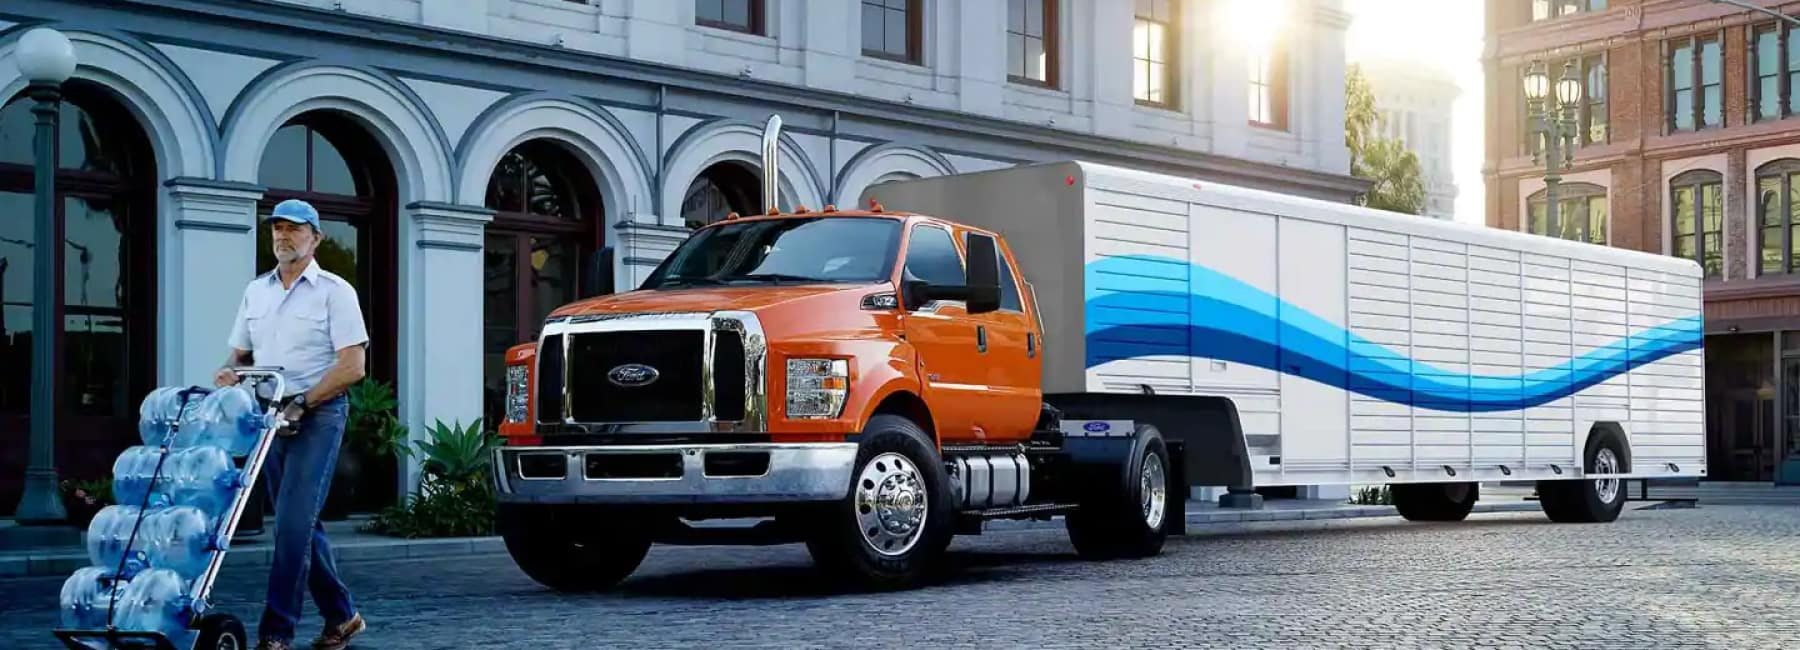 New Ford F-750 Medium Duty Commercial Truck